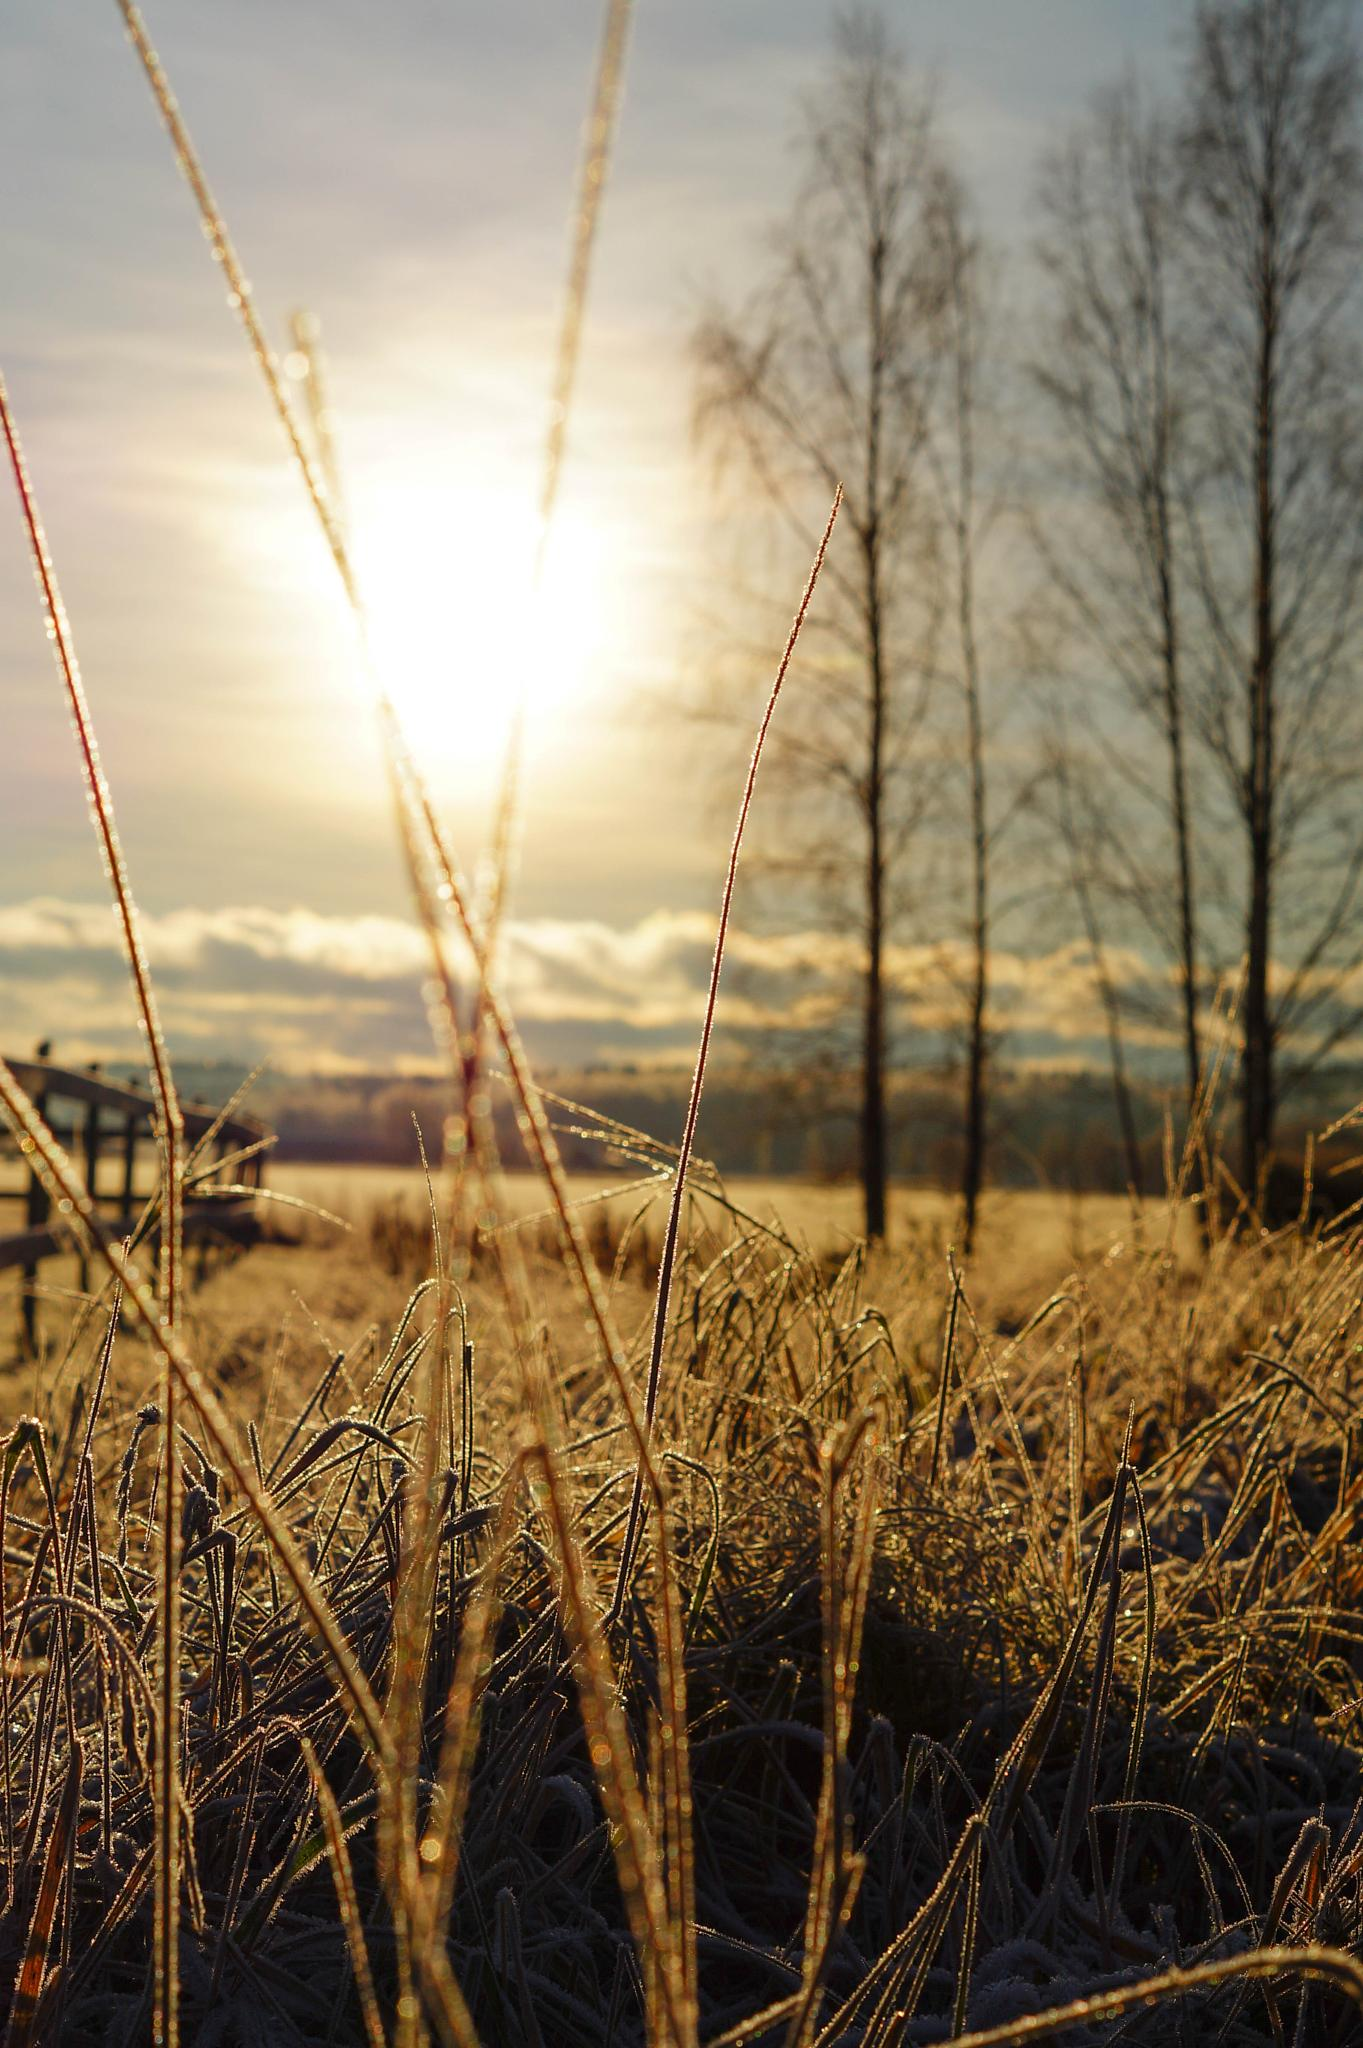 Warming sun on a cold day by Andreas Håkansson